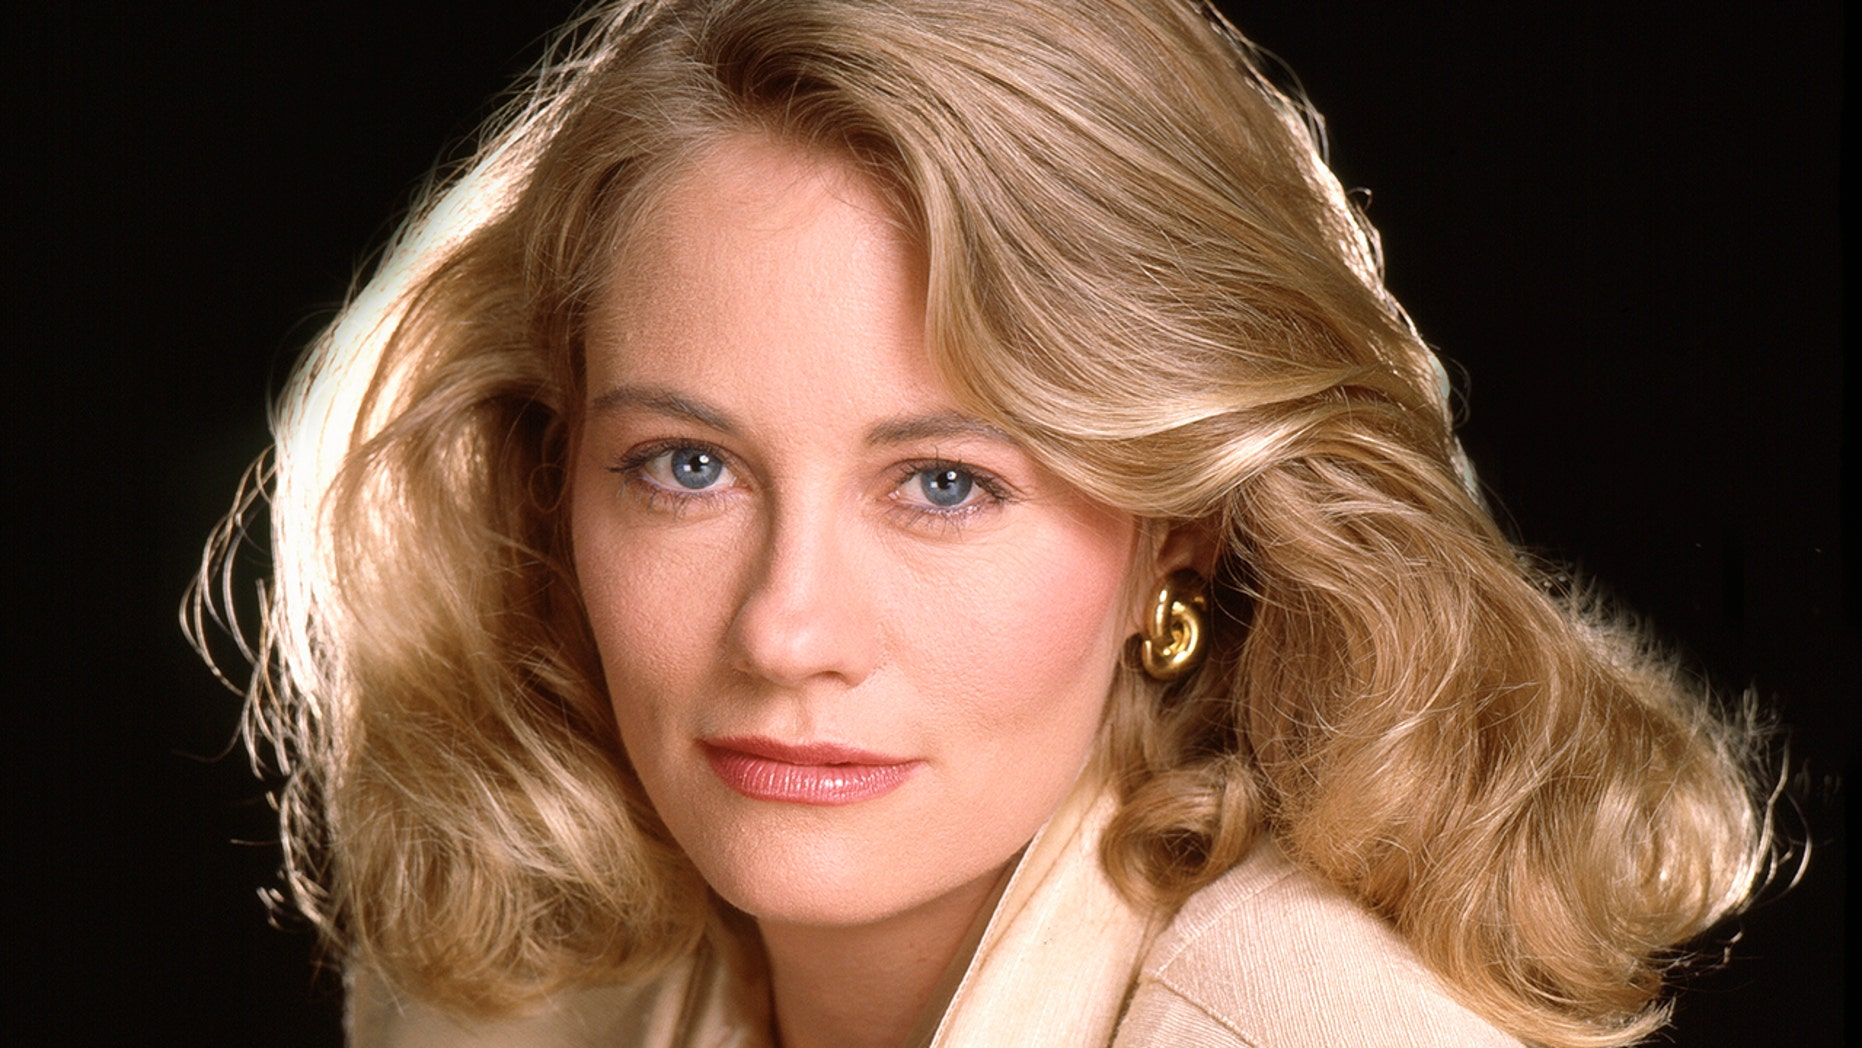 Cybill Shepherd says refusing Les Moonves' advances led to her show's cancellation